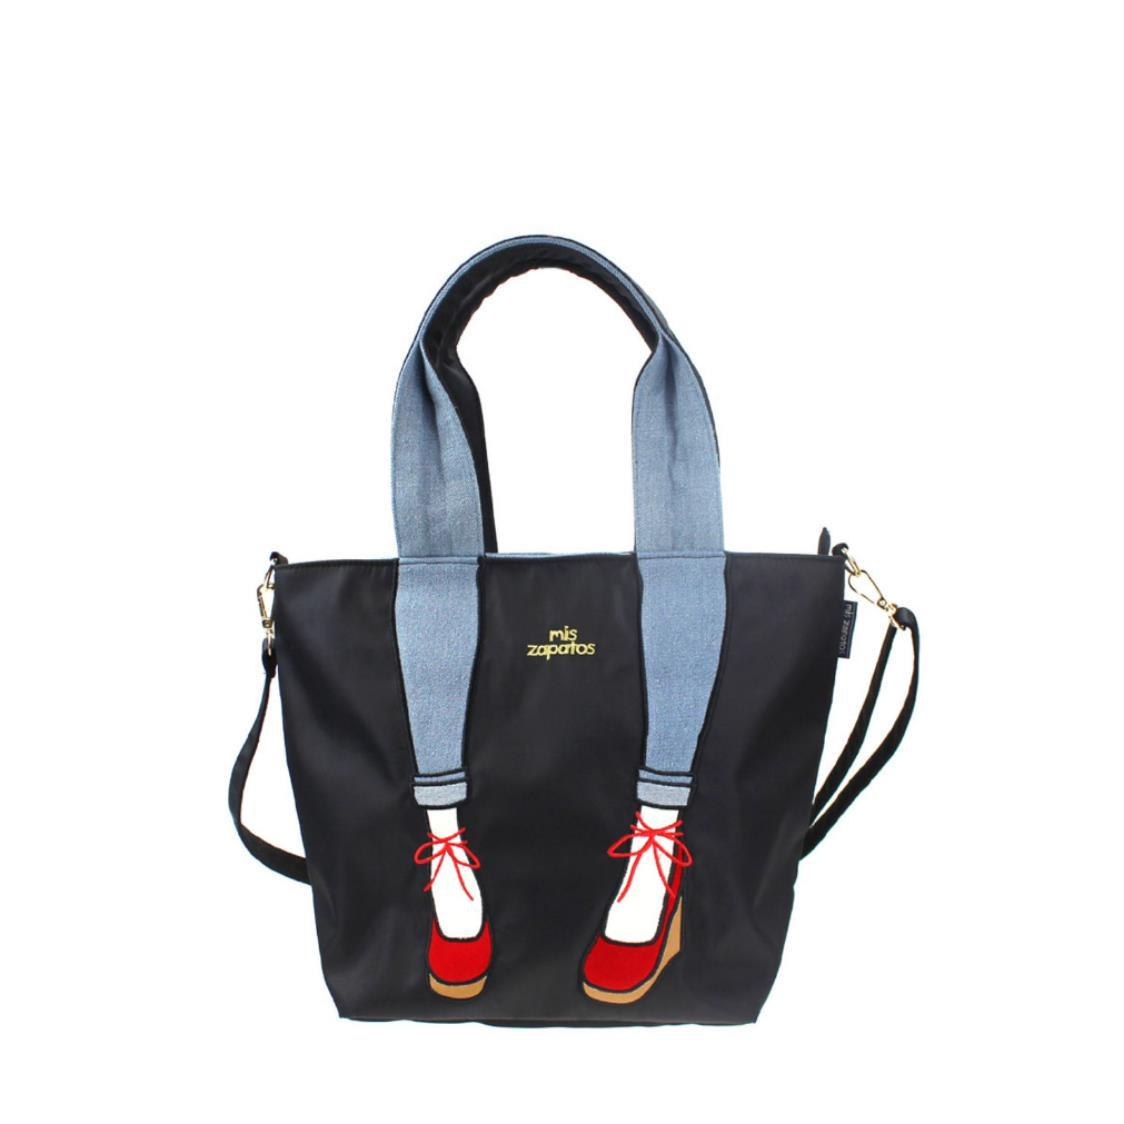 2-Way Use Jeans with Wedges Totebag Black